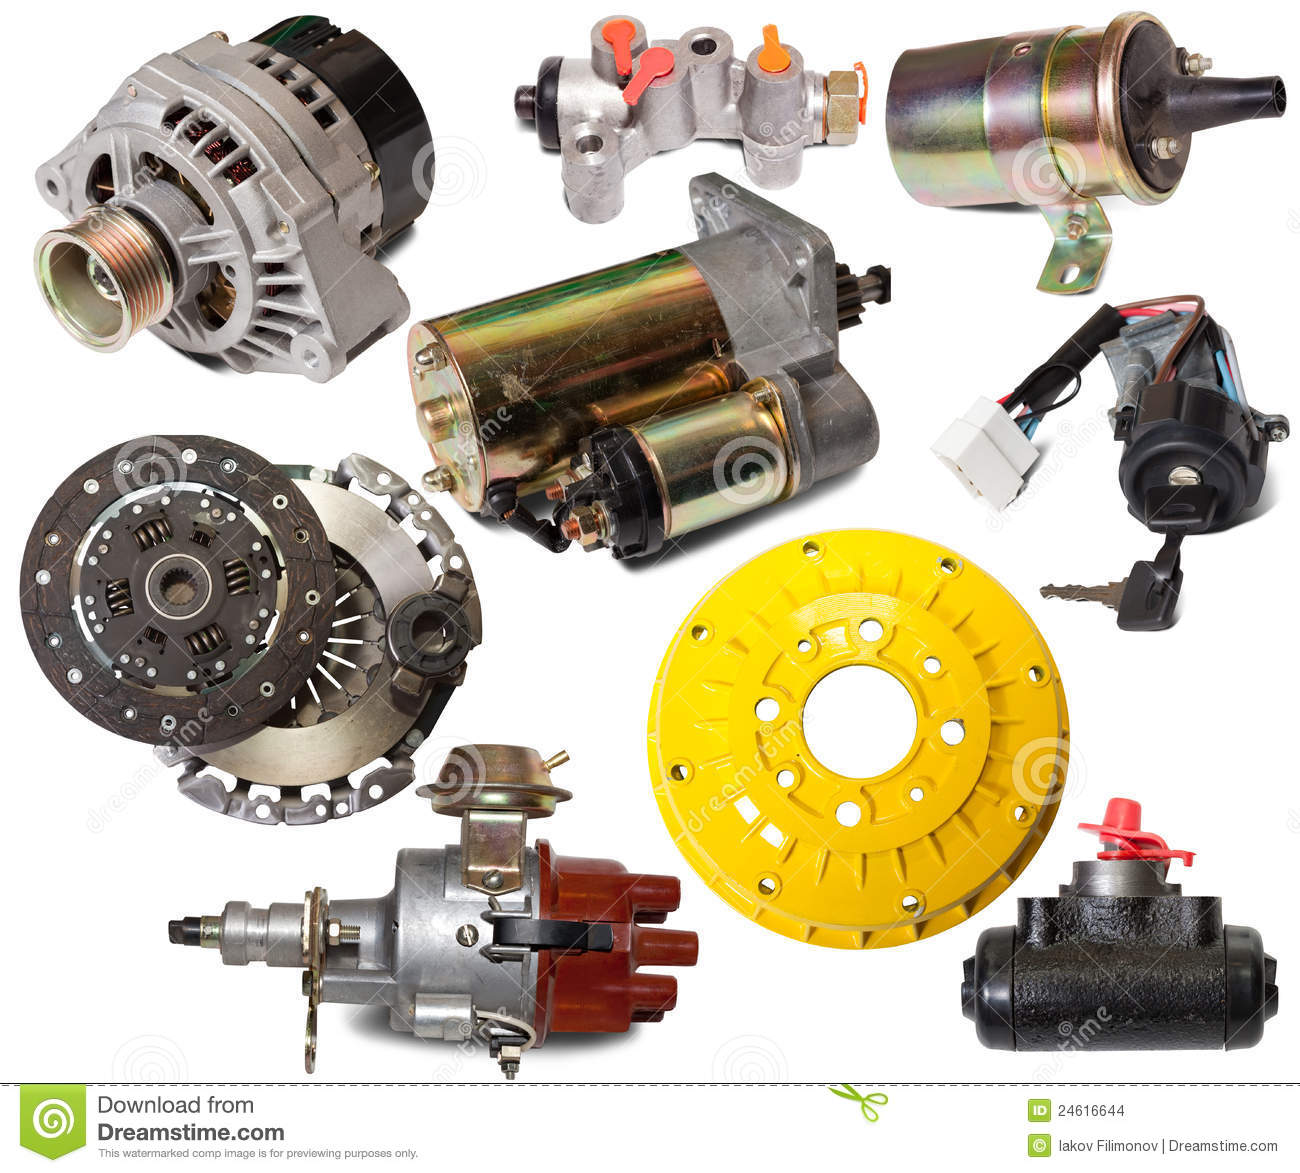 Auto Parts For Sale >> Set Of Auto Parts Stock Photo Image Of Objects Sale 24616644